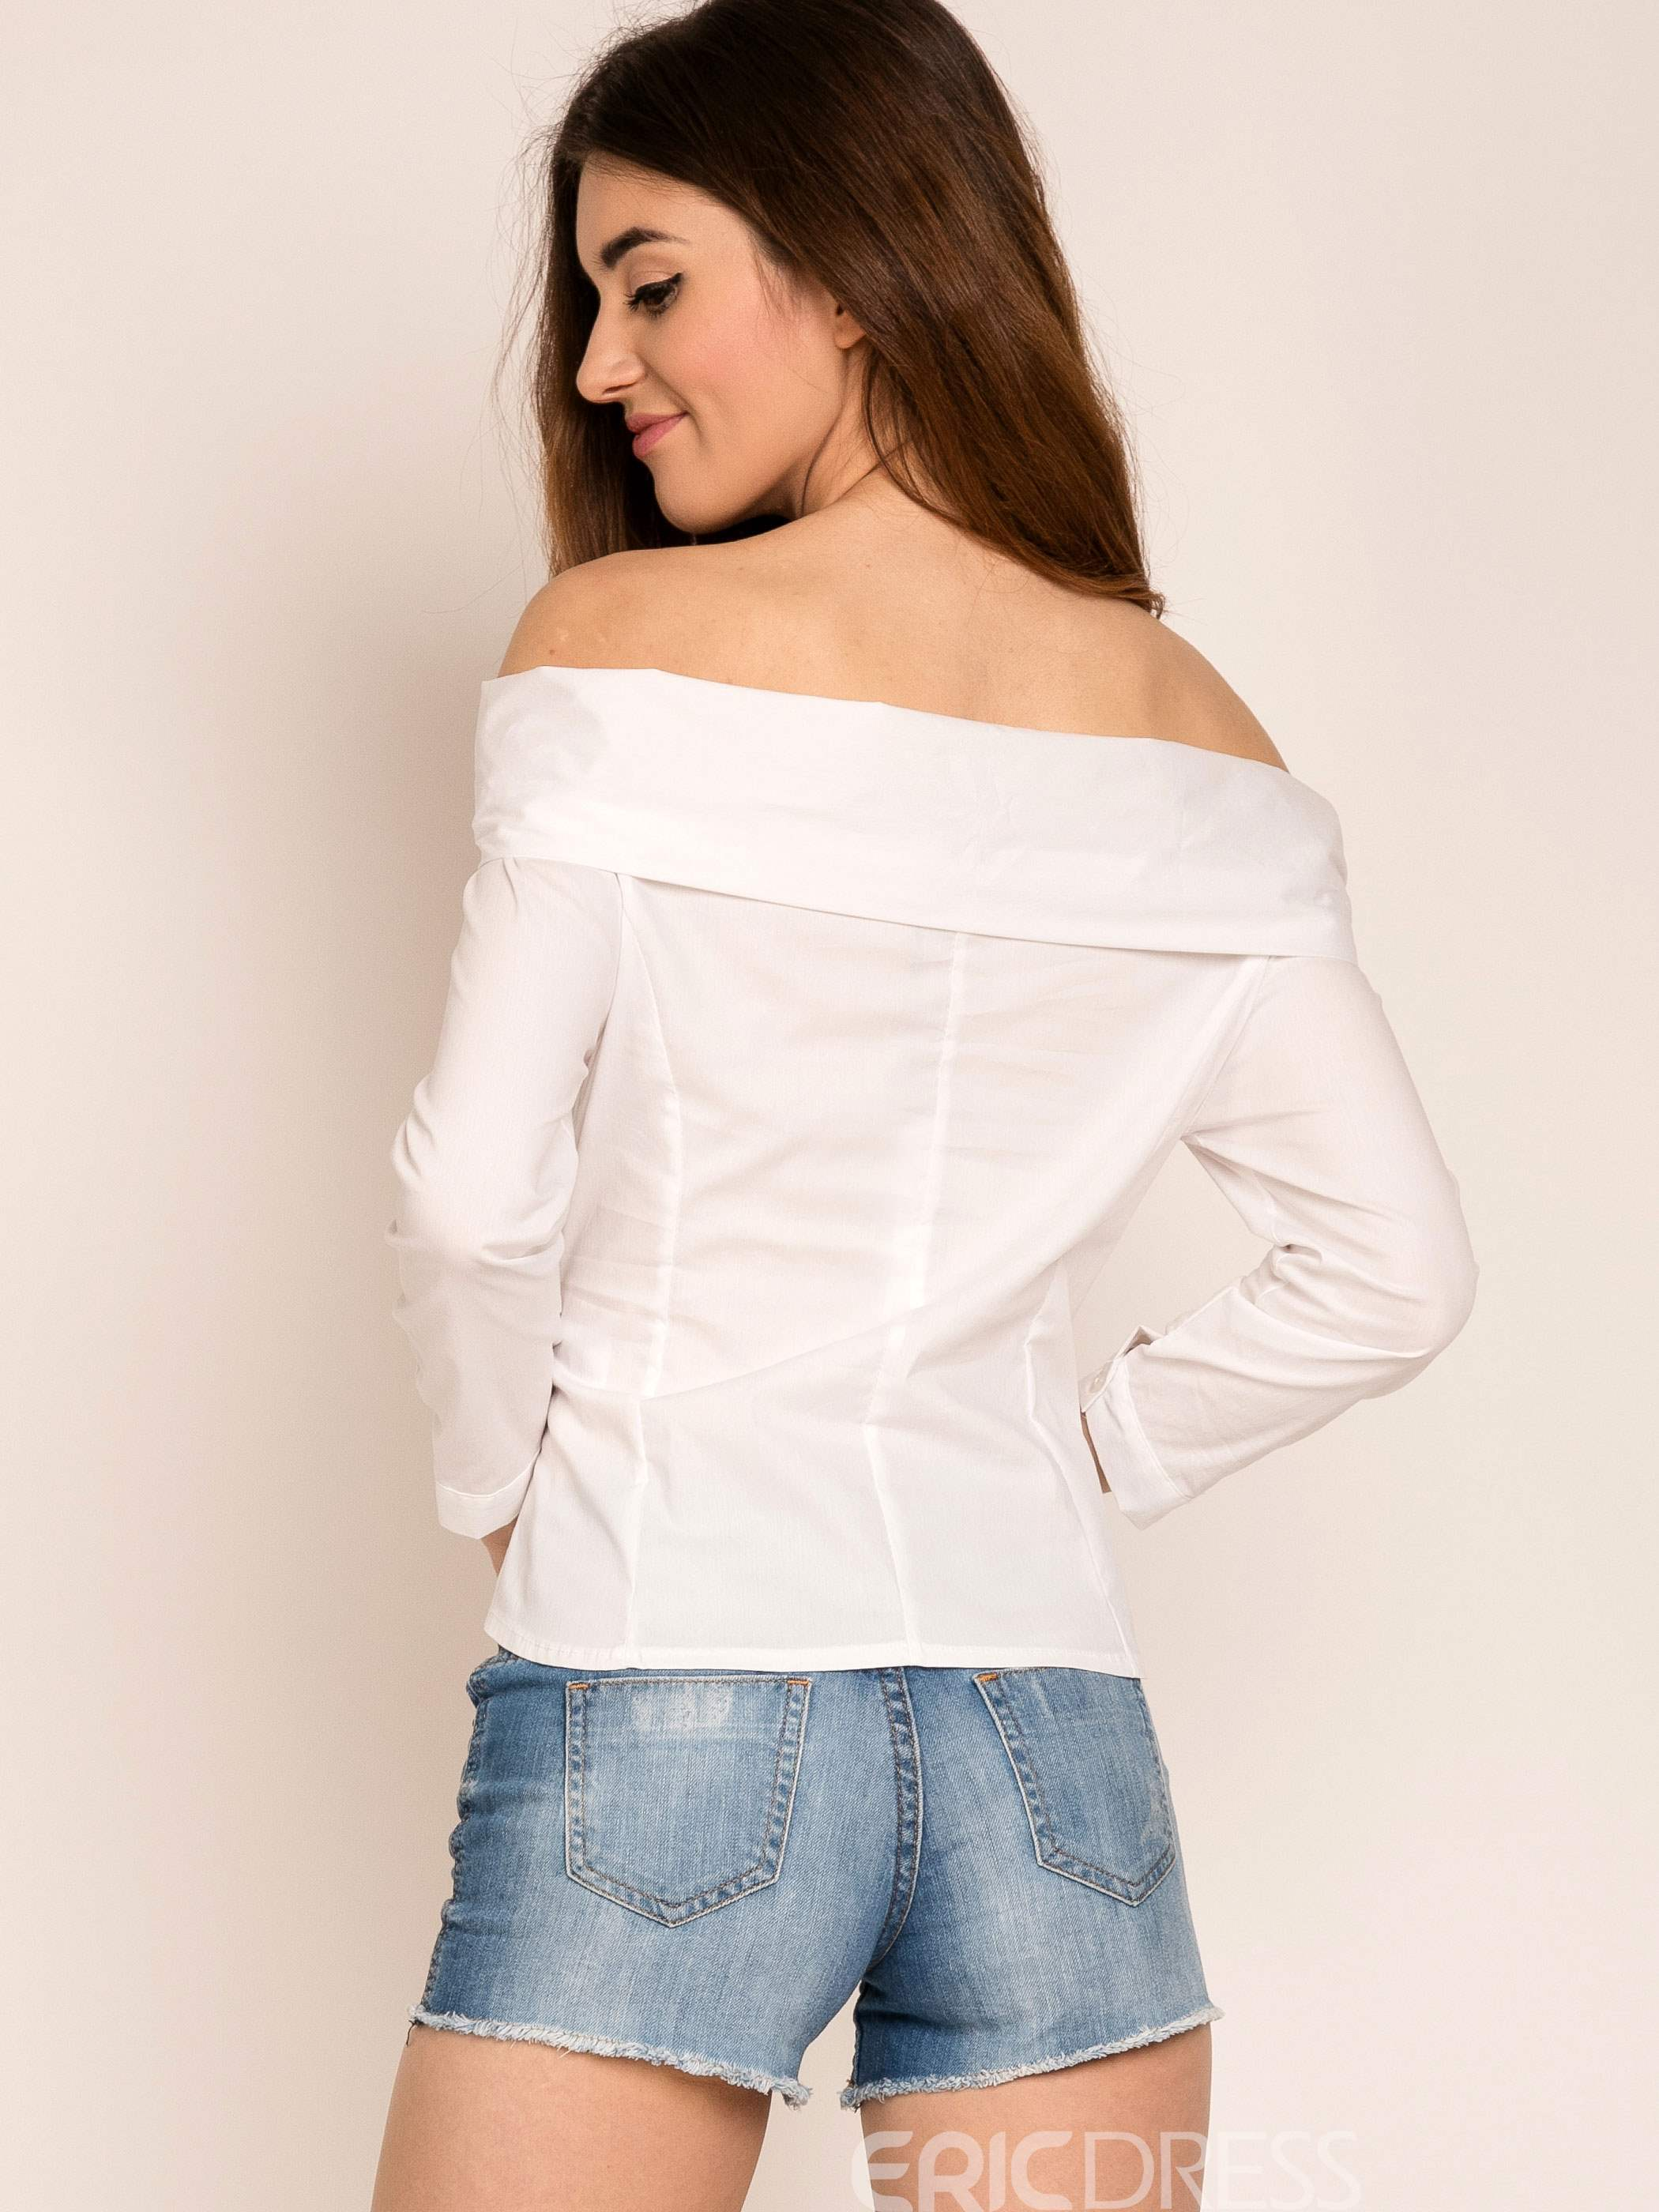 Ericdress White Slash Neck Bowknot Blouse